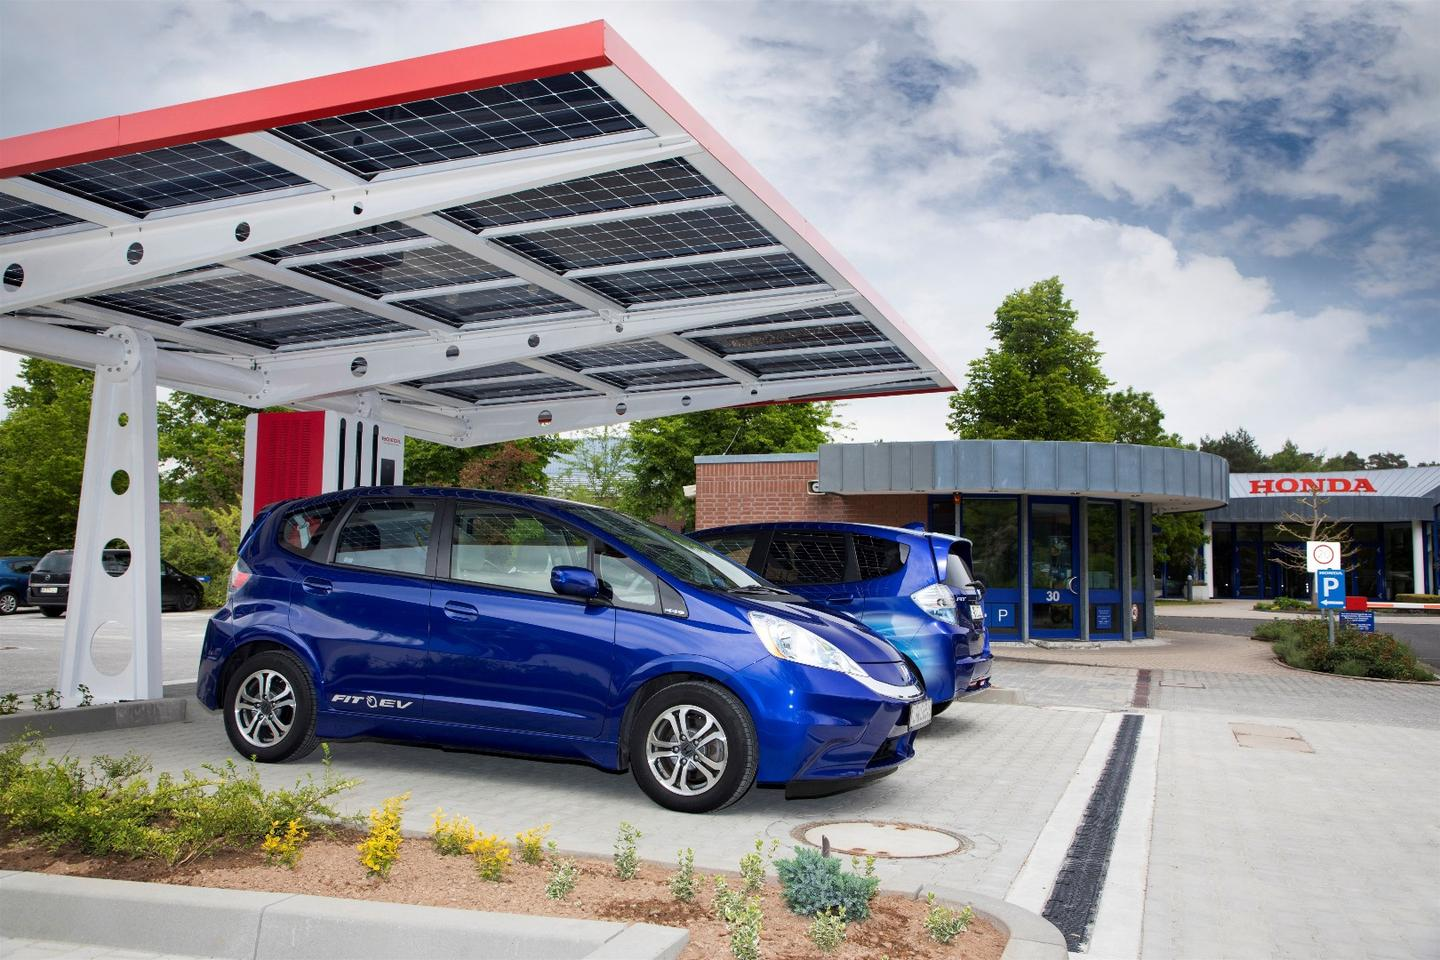 Honda uses renewable energy at its charge station